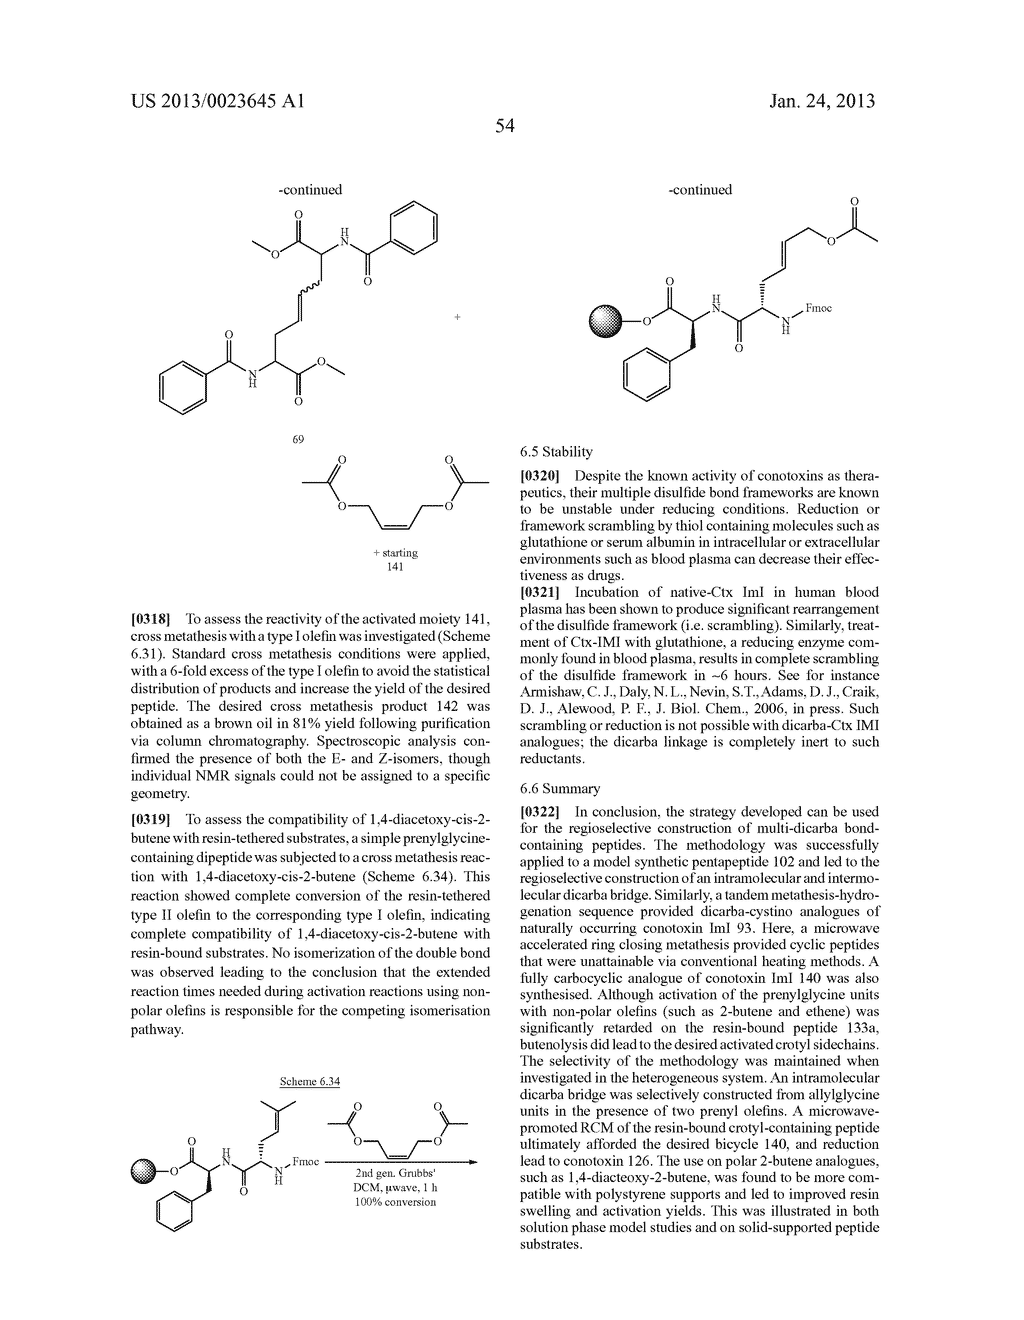 METHODS FOR THE SYNTHESIS OF DICARBA BRIDGES IN ORGANIC COMPOUNDS - diagram, schematic, and image 59